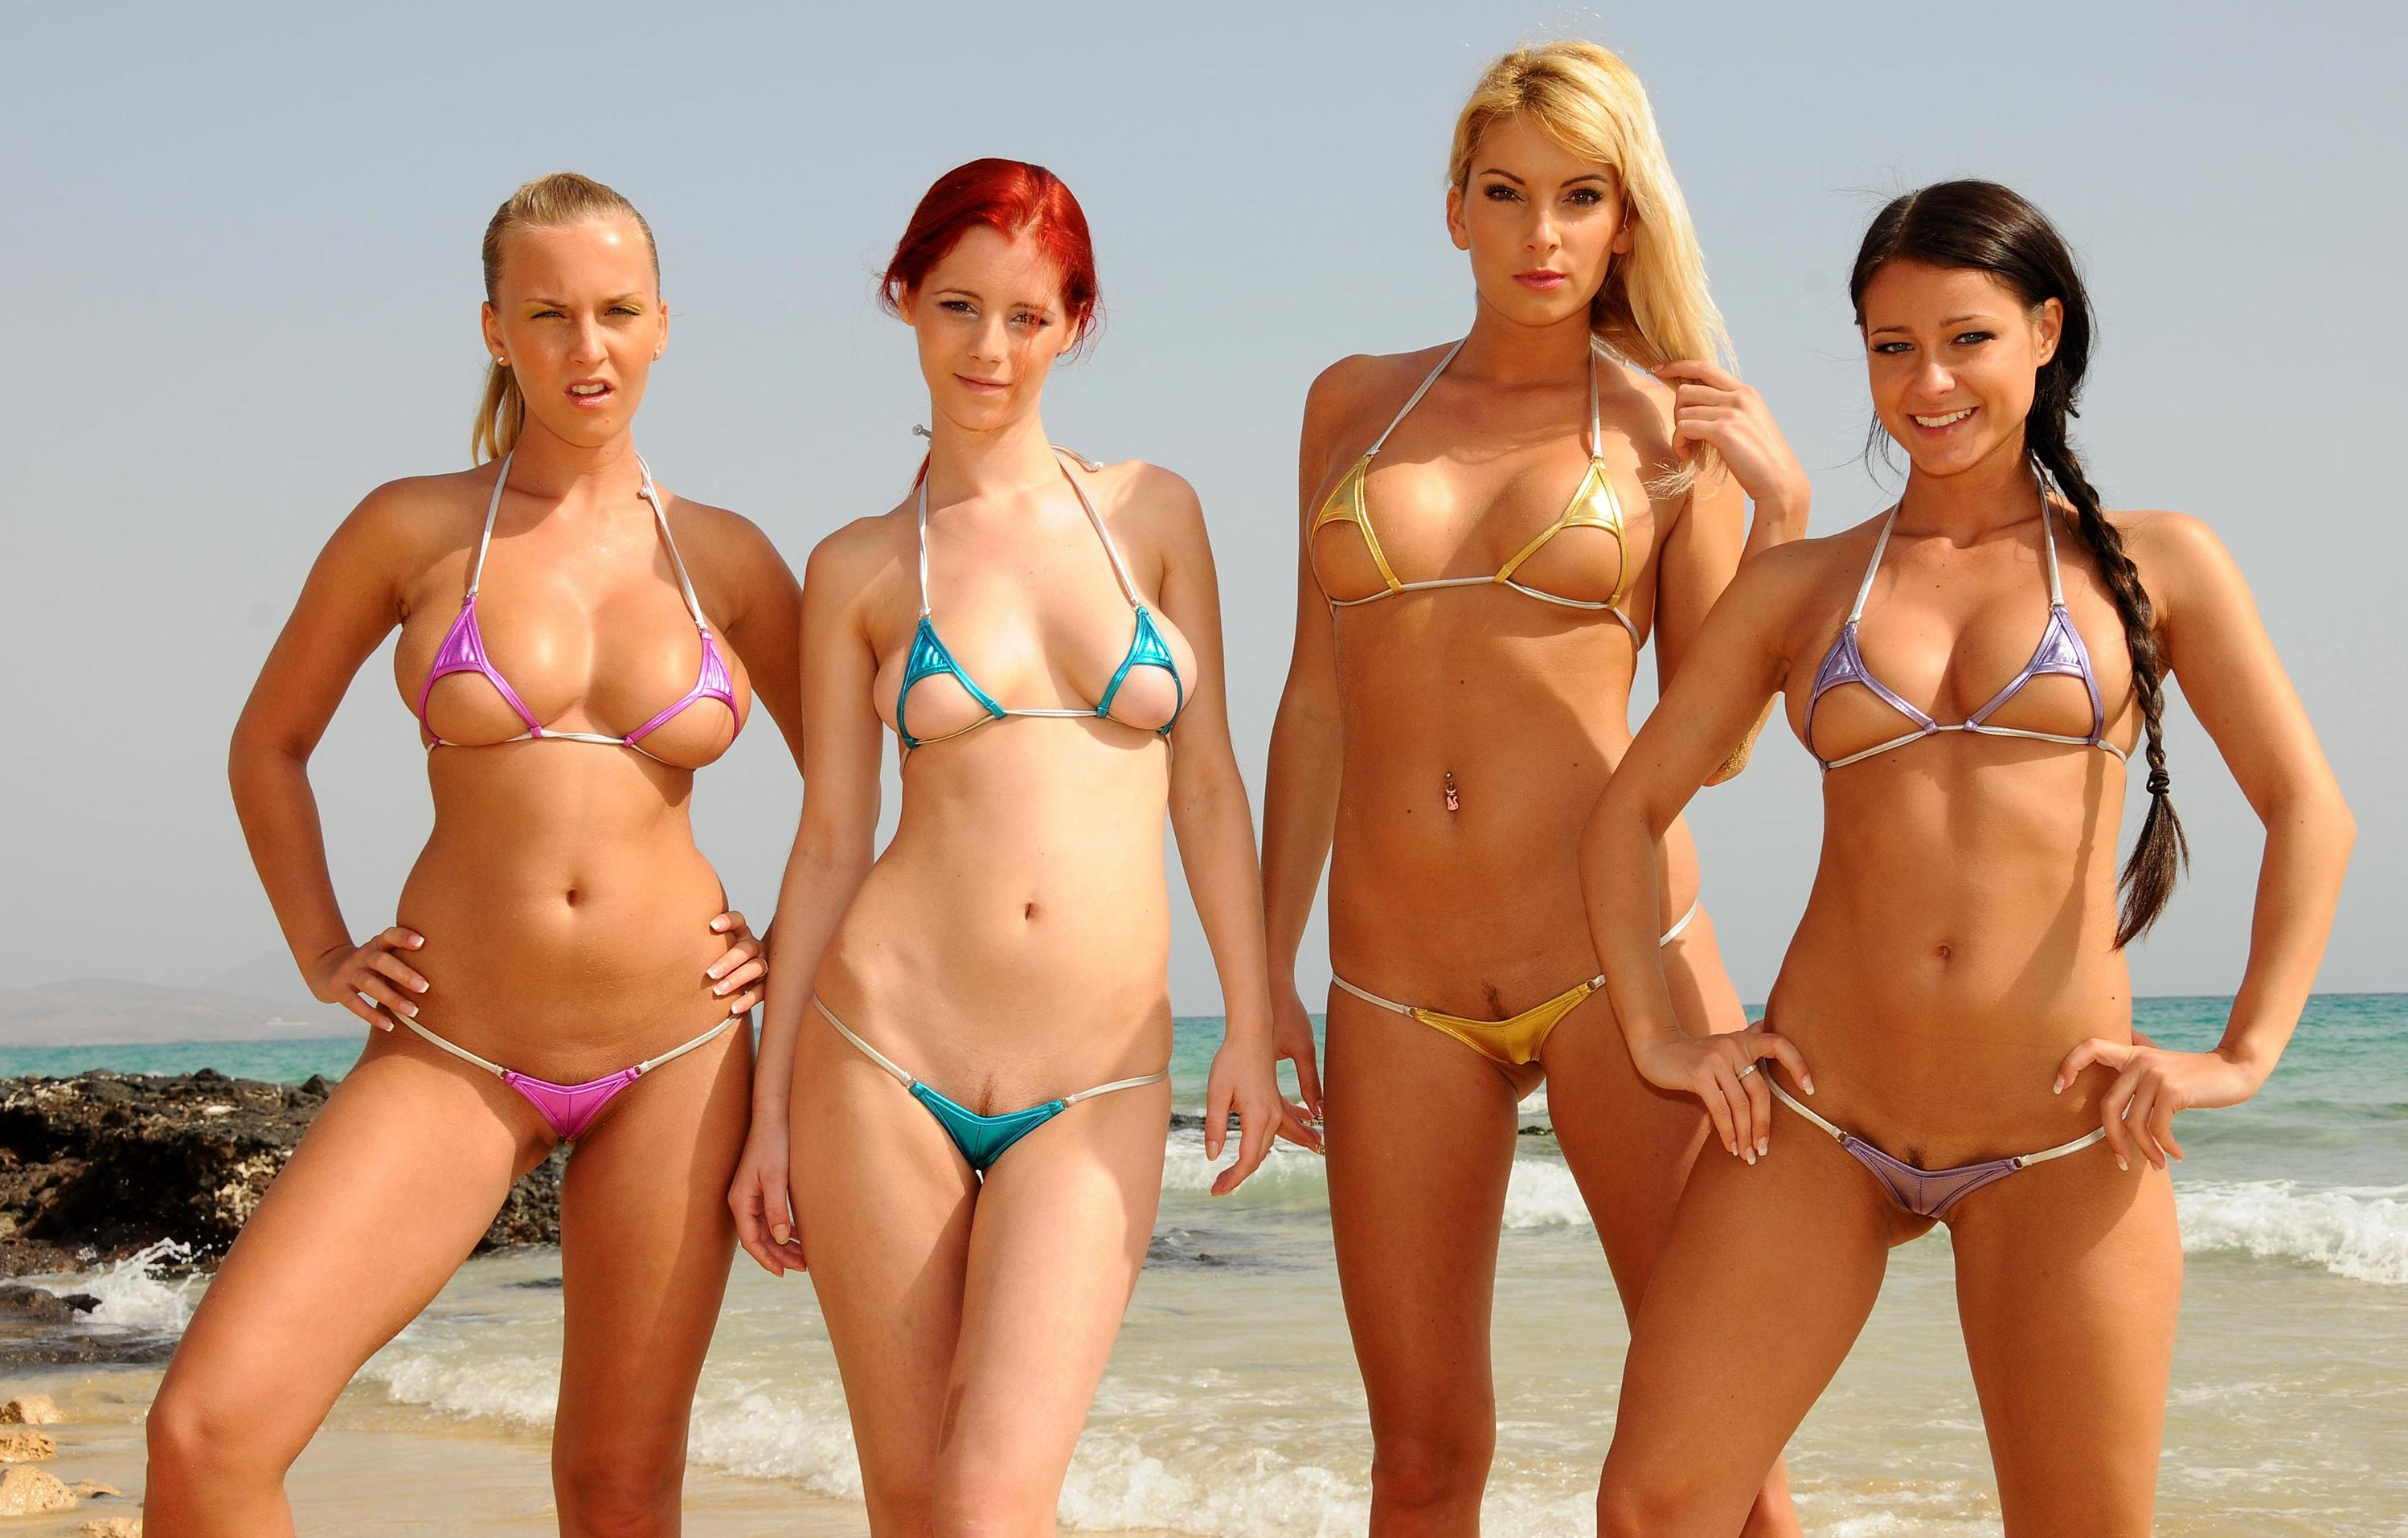 Girls wearing micro bikini on beach